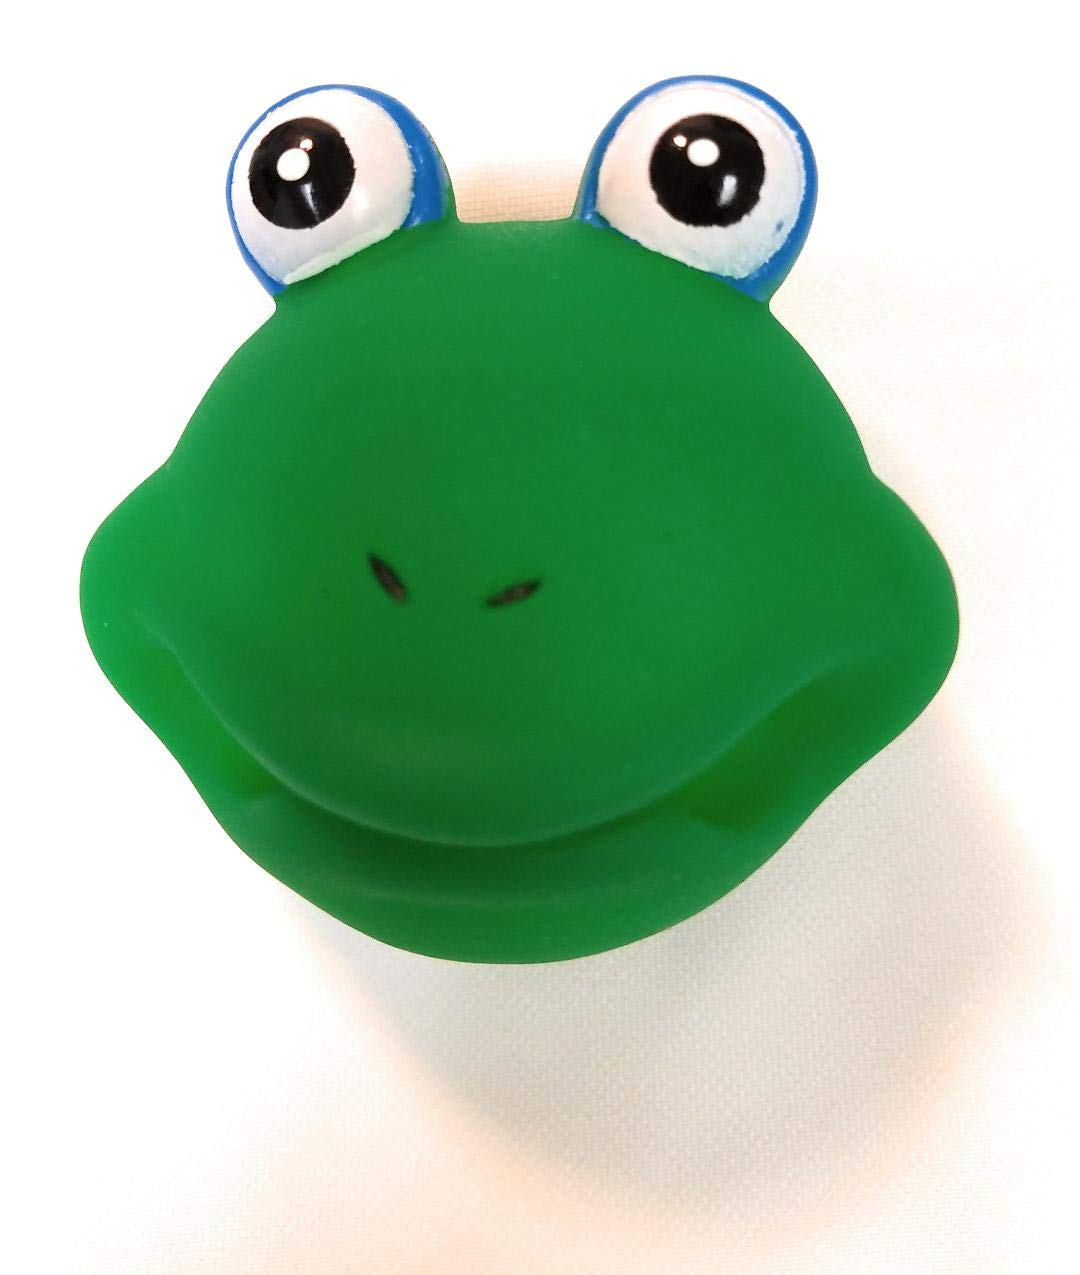 Cwinc Kids Toothbrush Holder or Accessories Holder Inc Green Froggy